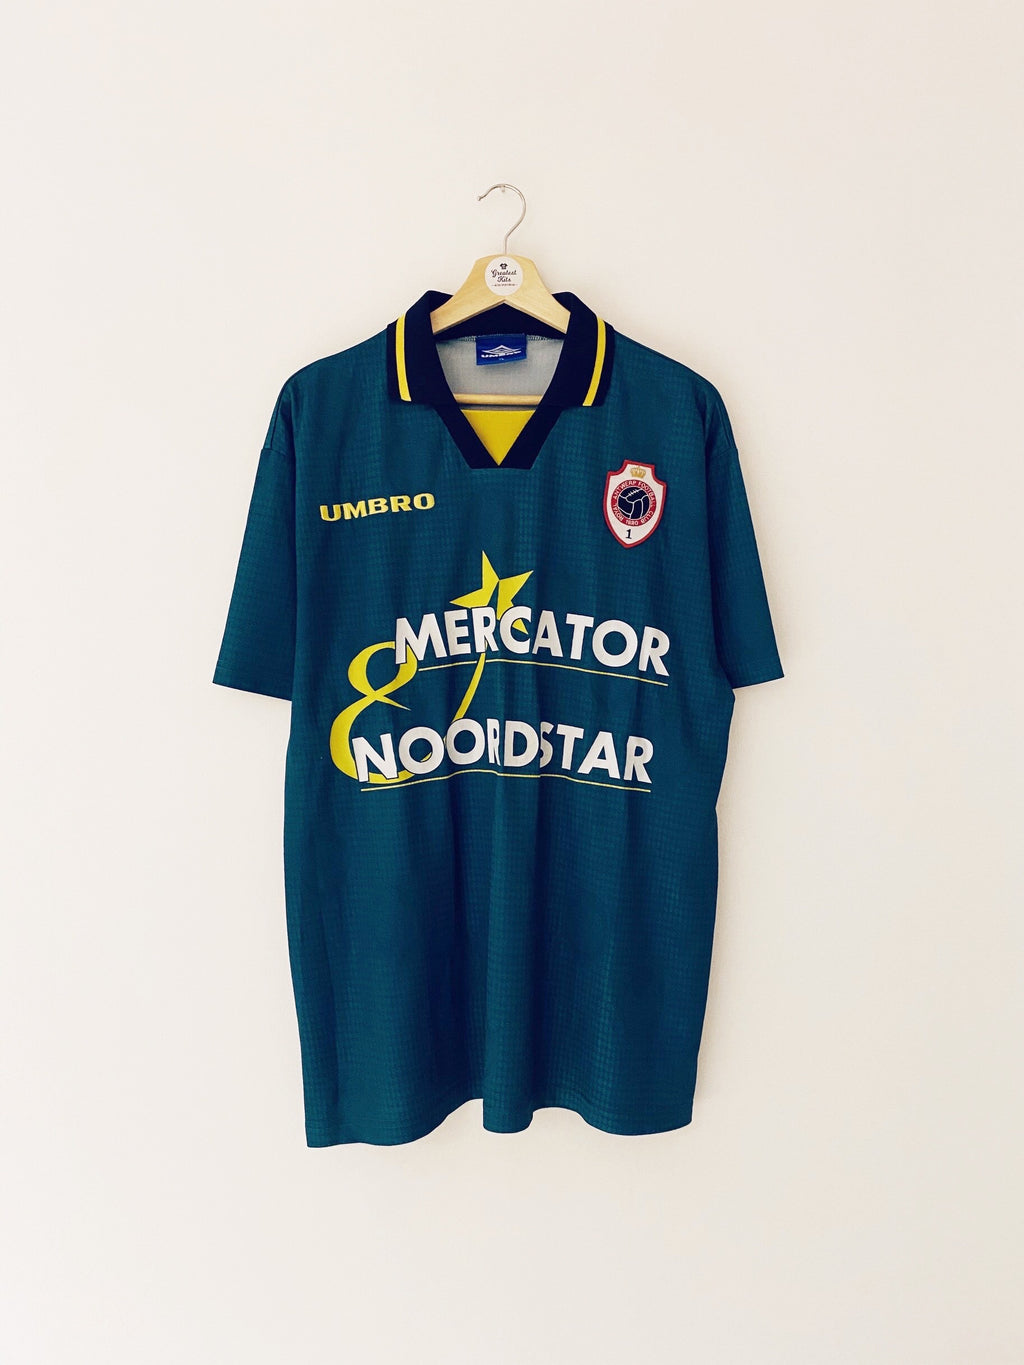 1997/98 Royal Antwerp Away Shirt #5 (XL) 8/10